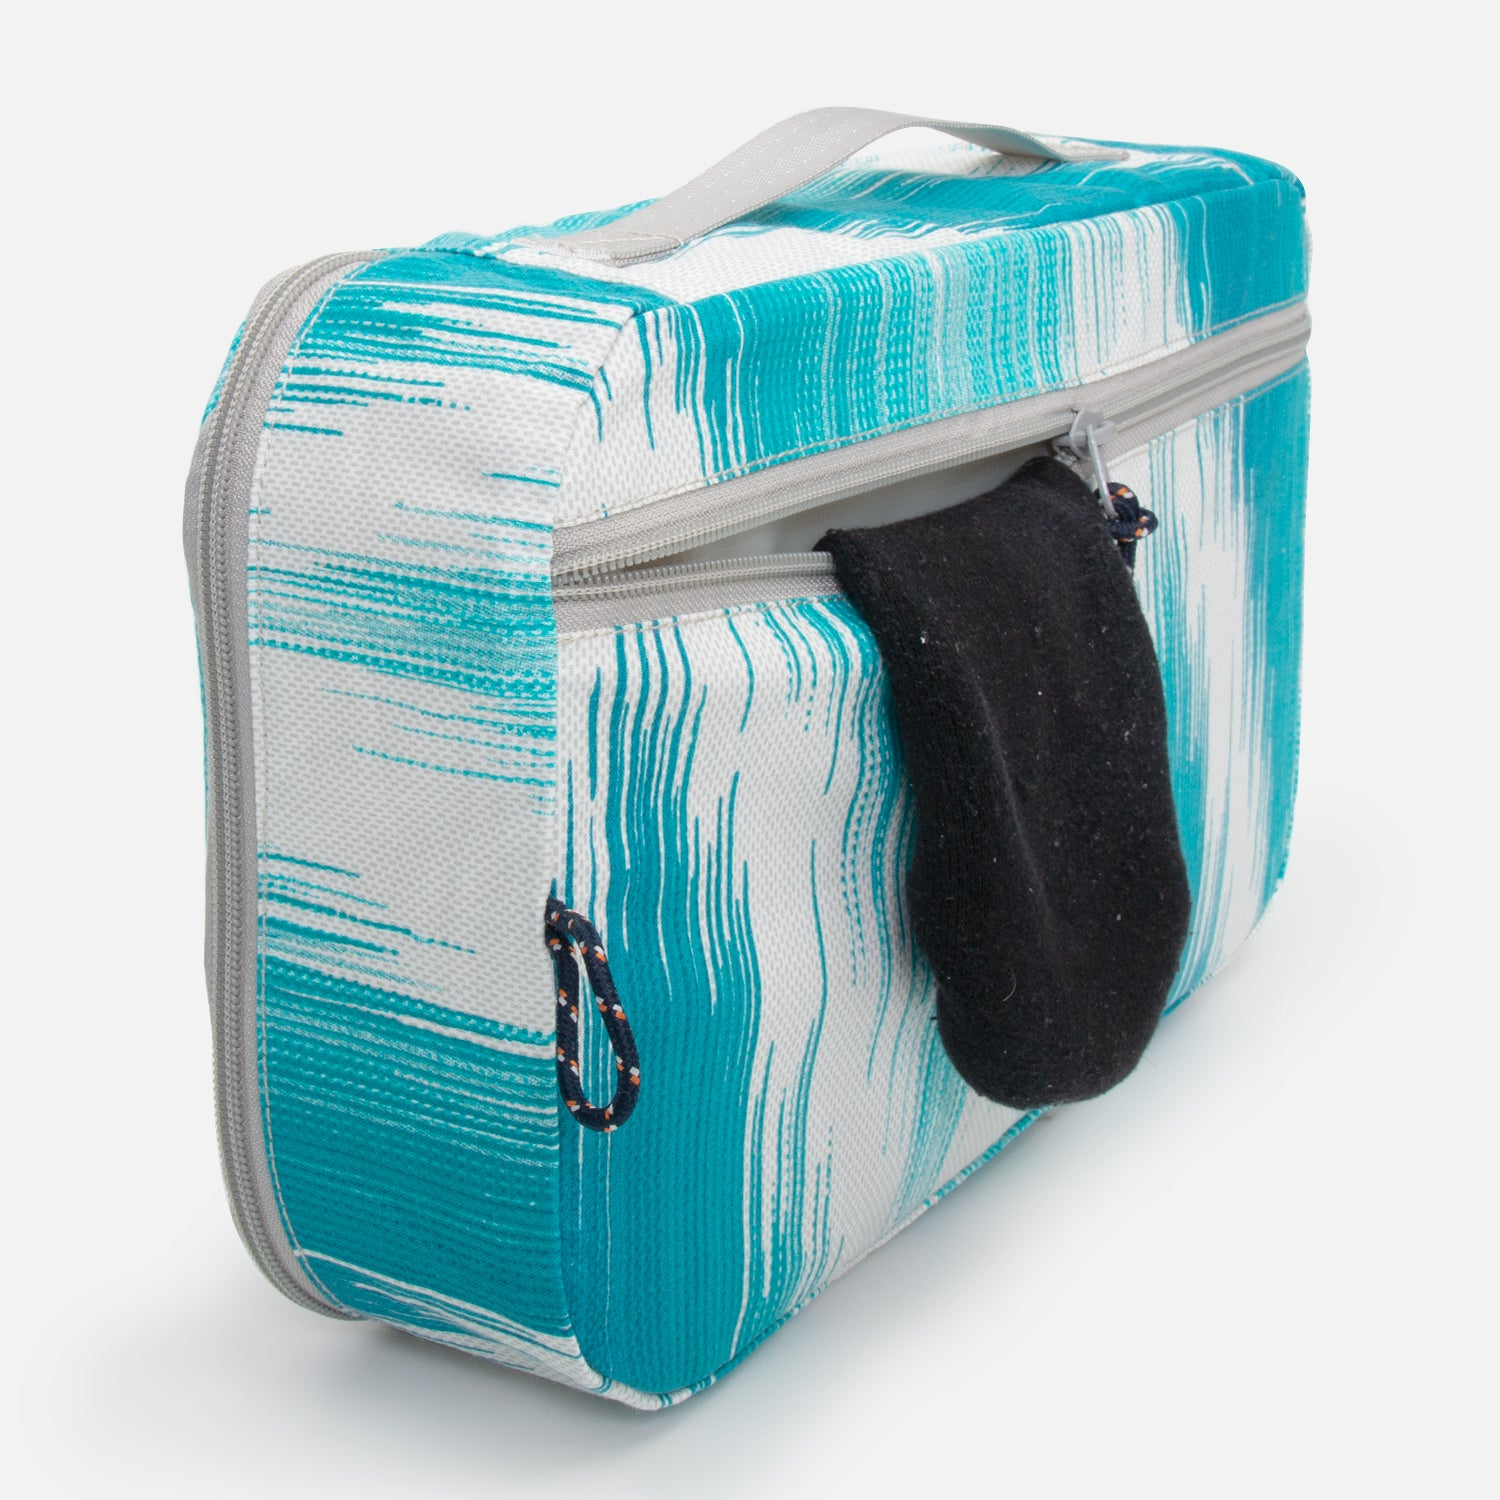 Packing Cubes 5 Piece Set - Costa Calma - globite